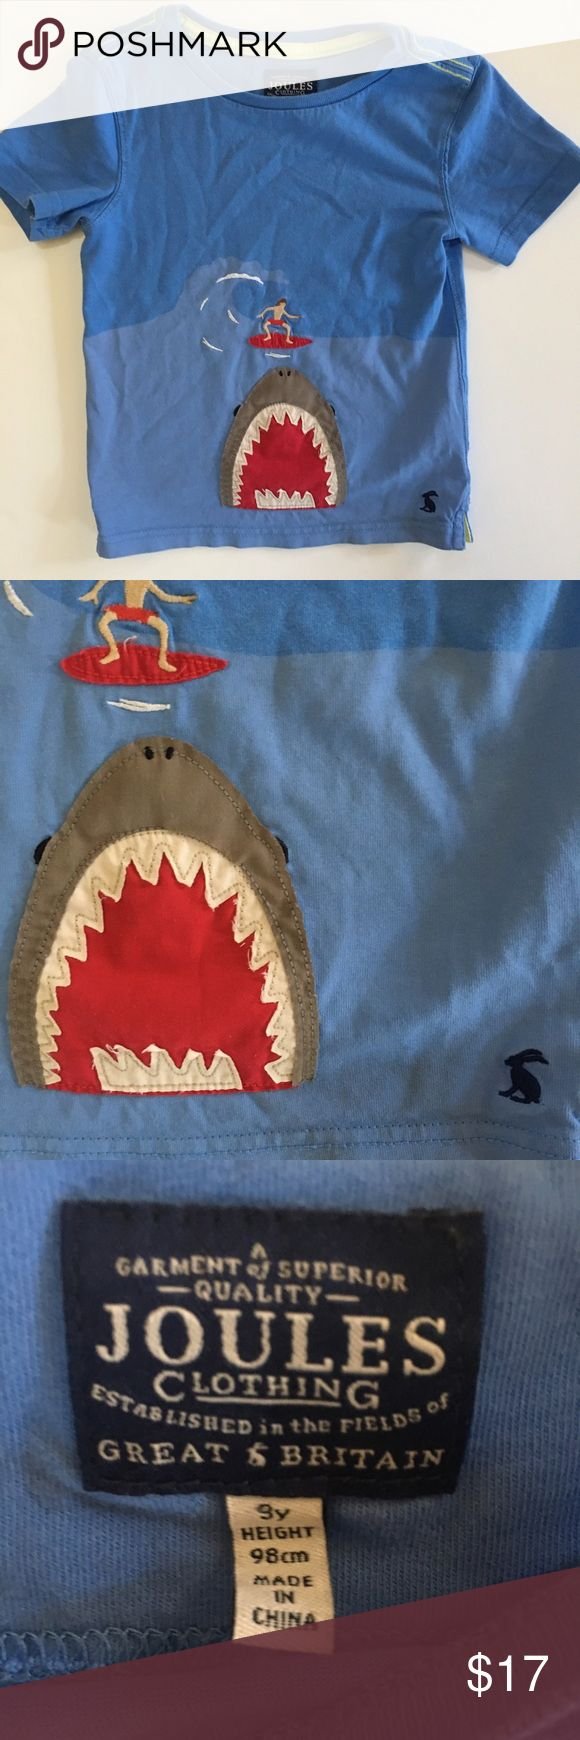 Joules shark tee Super cool applique tee vguc slight slight ww it's pretty minimal cross posted Size 9 Joules Shirts & Tops Tees - Short Sleeve